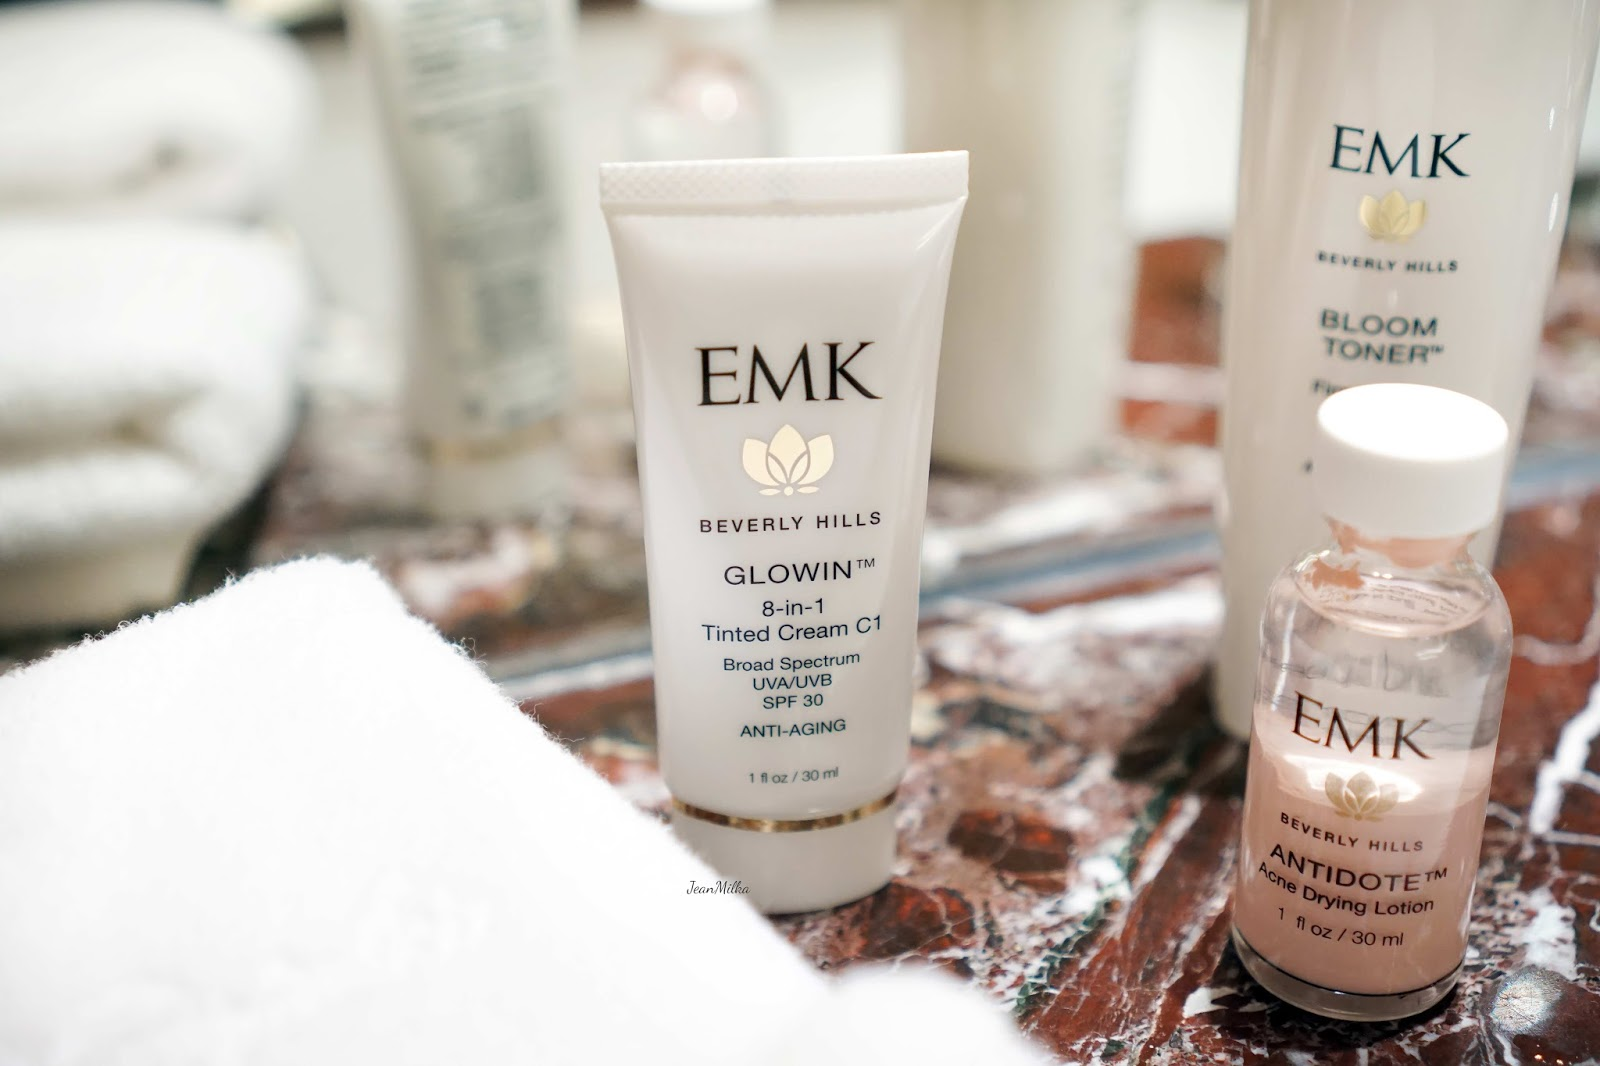 emk, emk beverly hills, review emk beverly hills, emk beverly hills skincare, skicare, review, product review, acne skincare, kulit berjerawat, emk glowin tinted cream, emk glowin tint